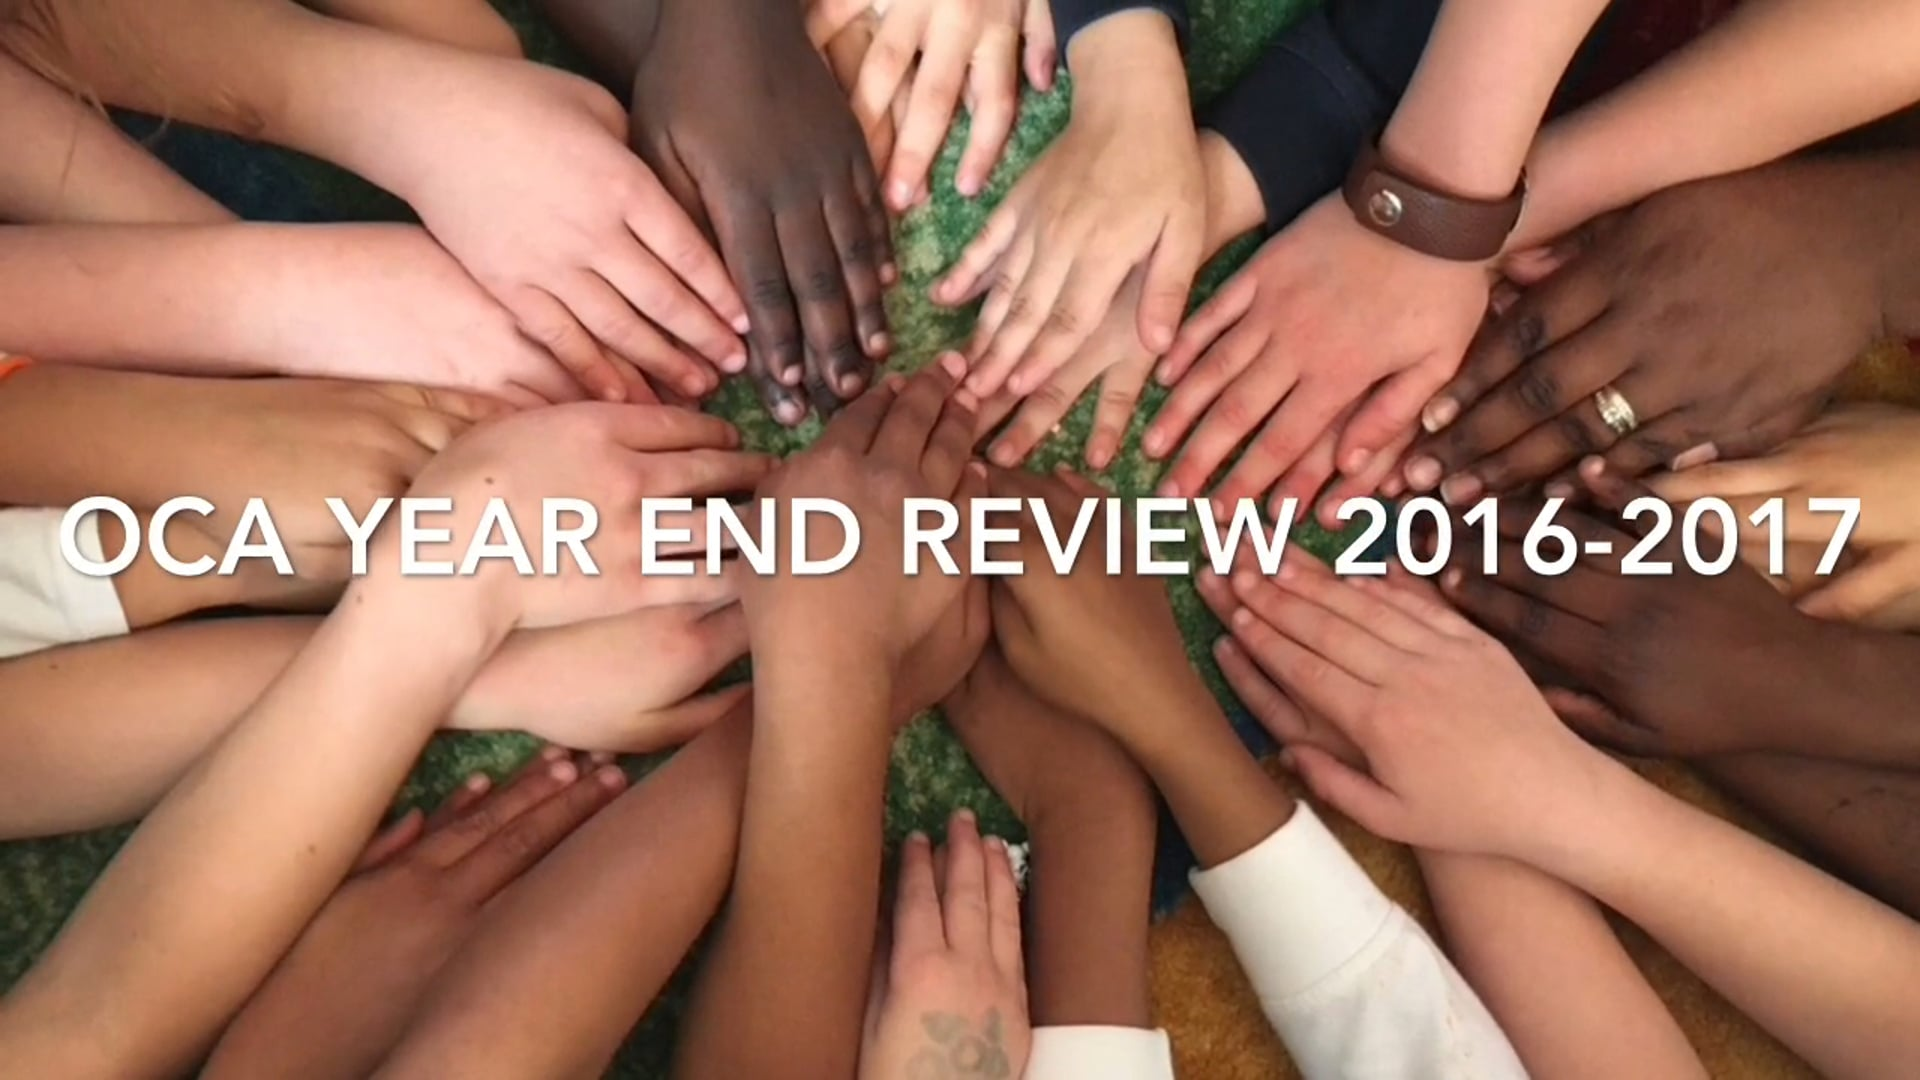 OCA Year End Review 2016-2017